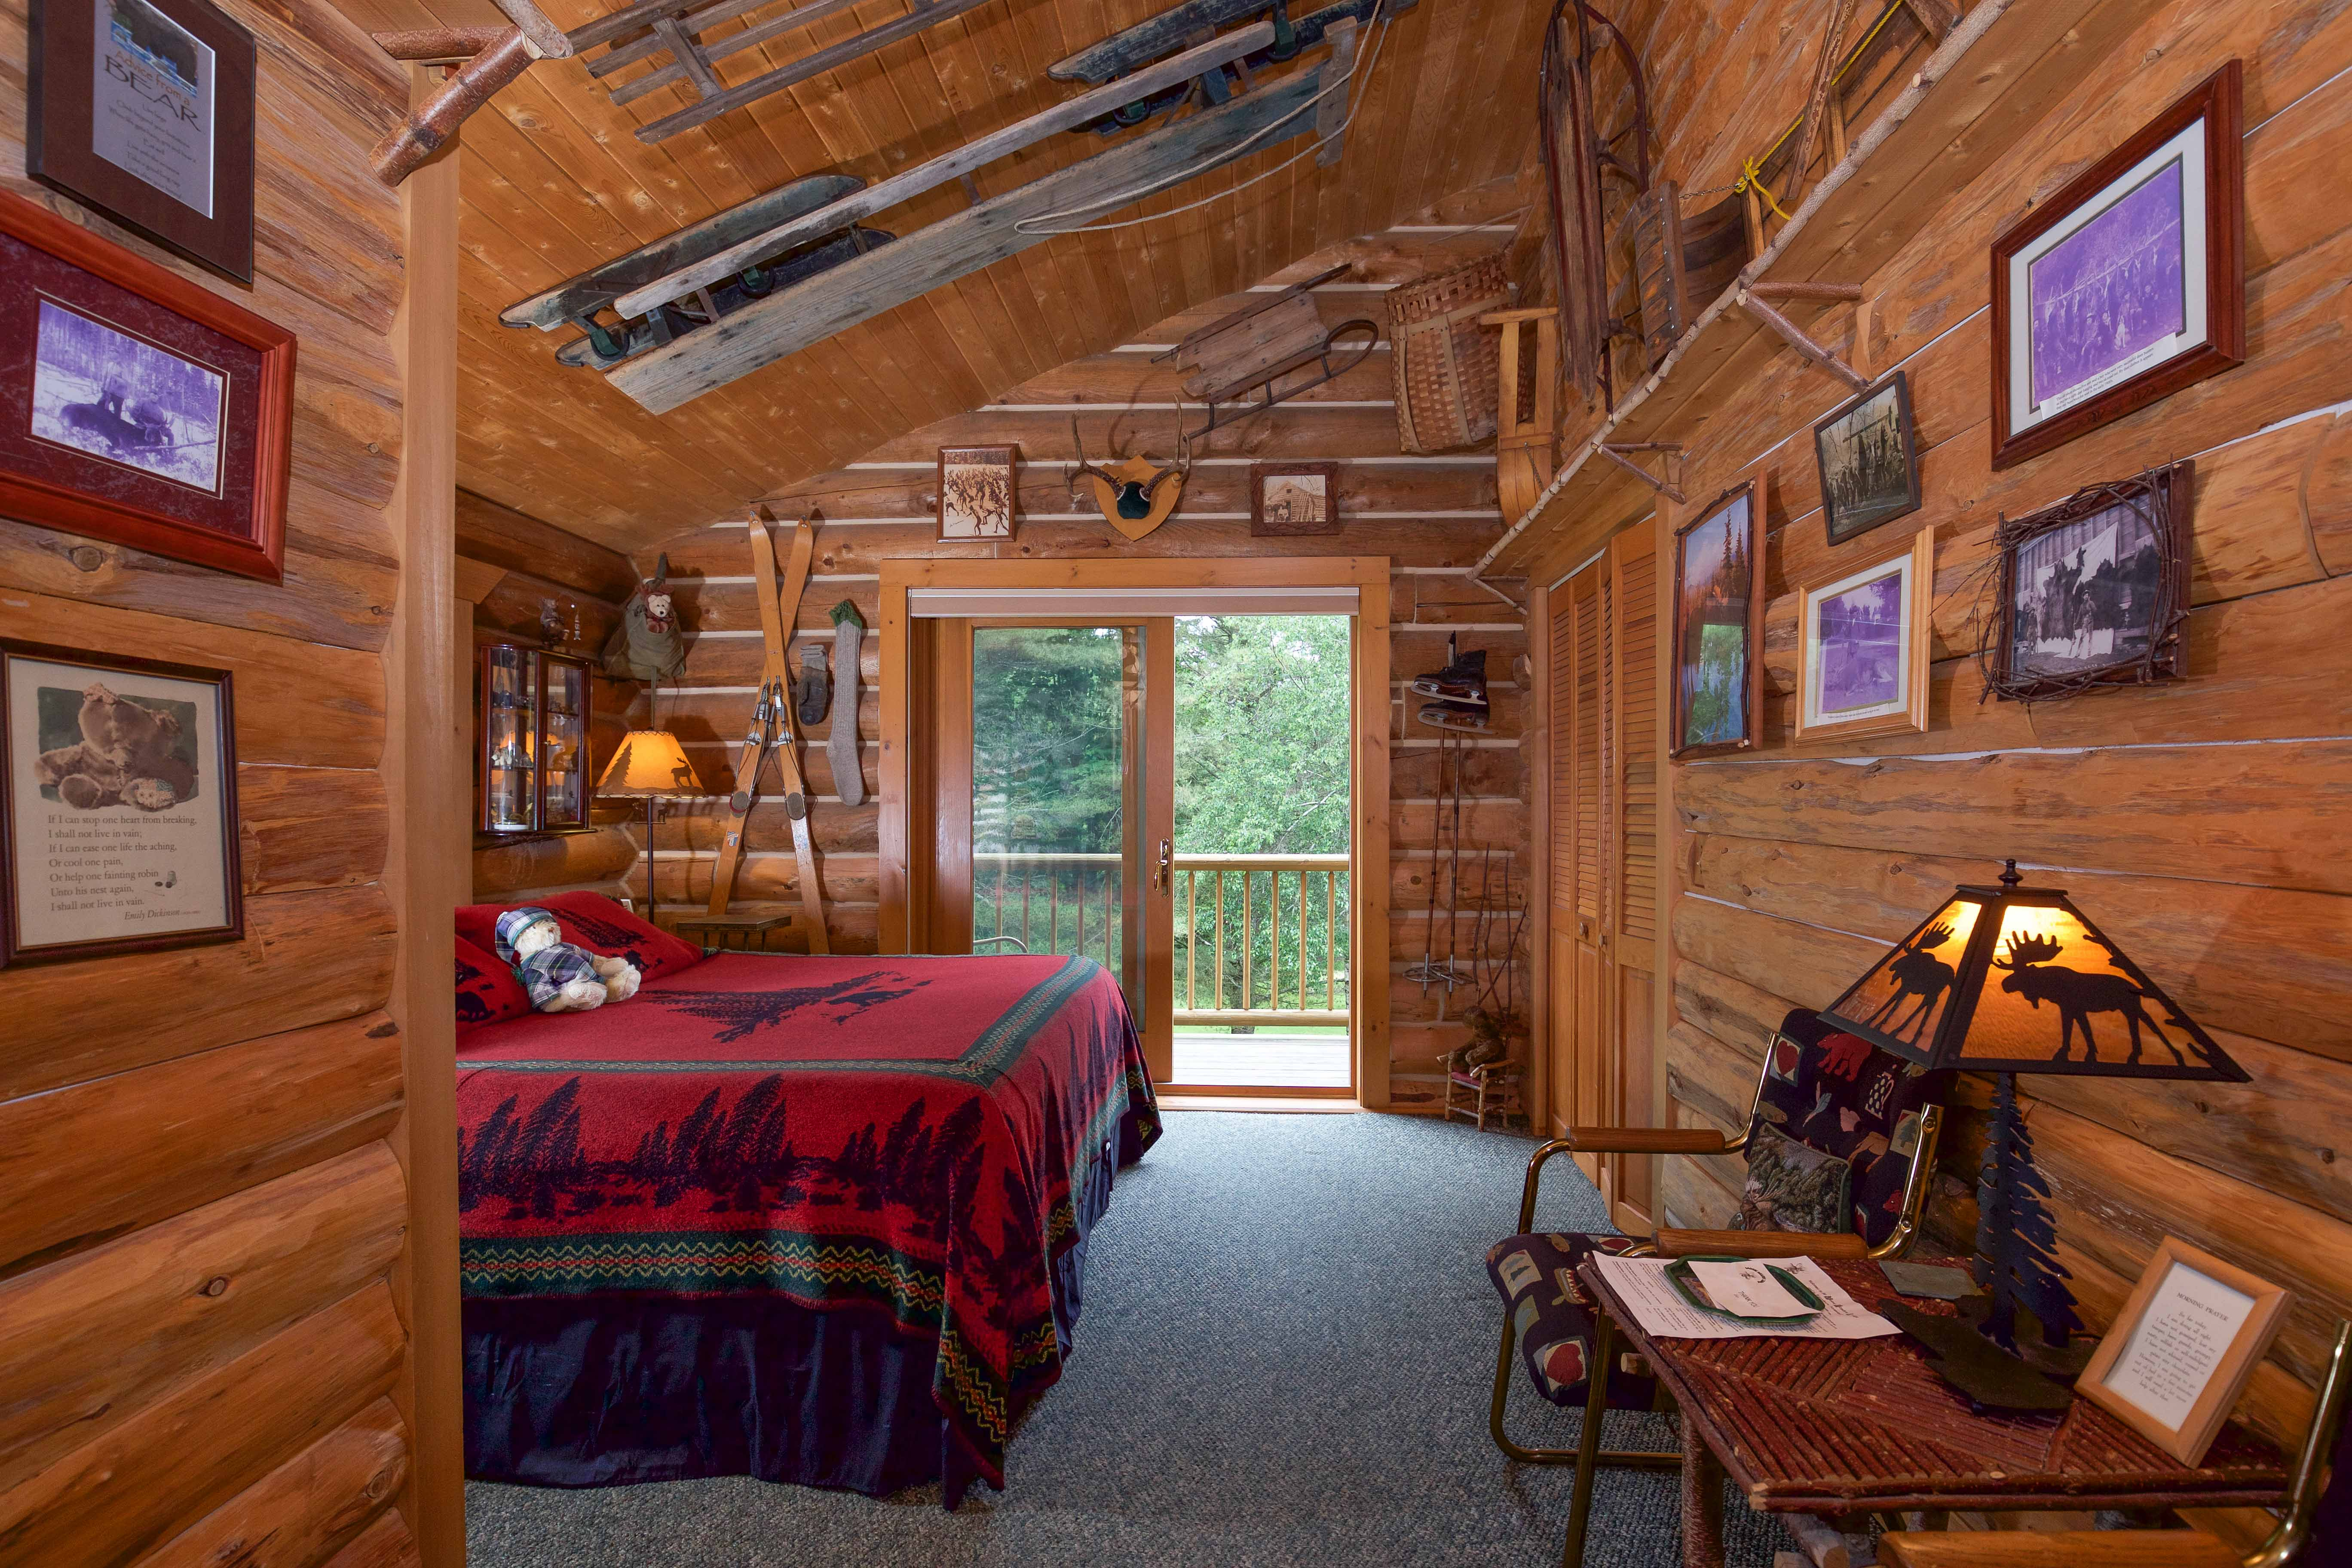 Sled Room at Moose Meadow Lodge